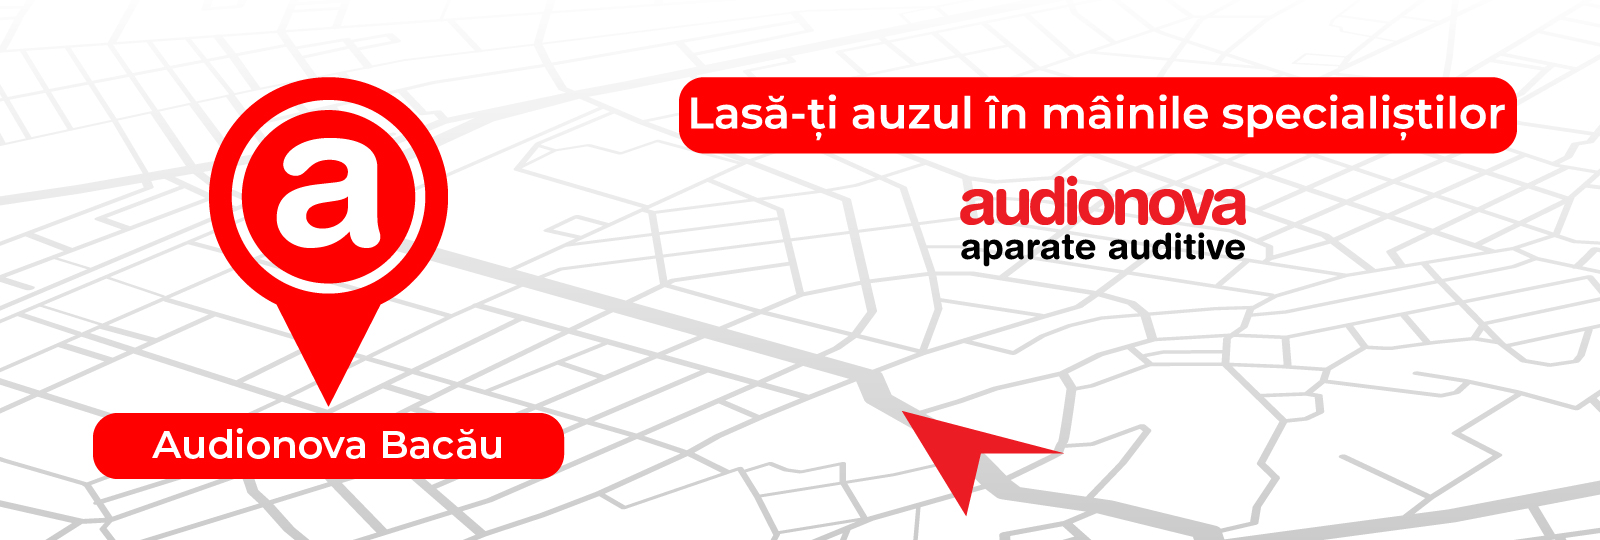 aparate auditive bacau